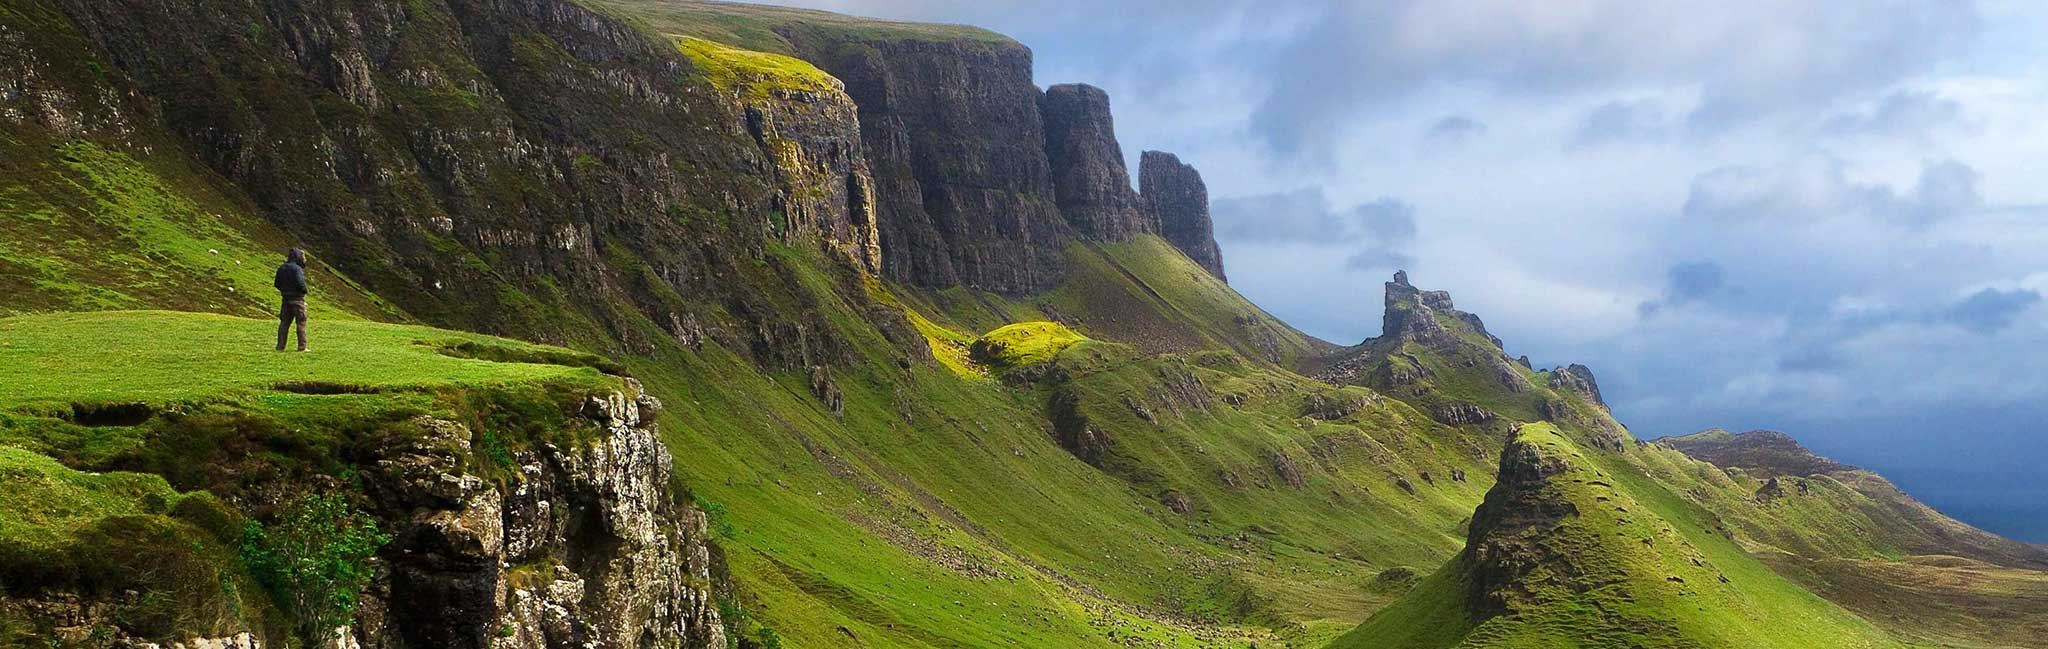 Scotland Tours, Vacations & Travel Packages 2020-2021 ...